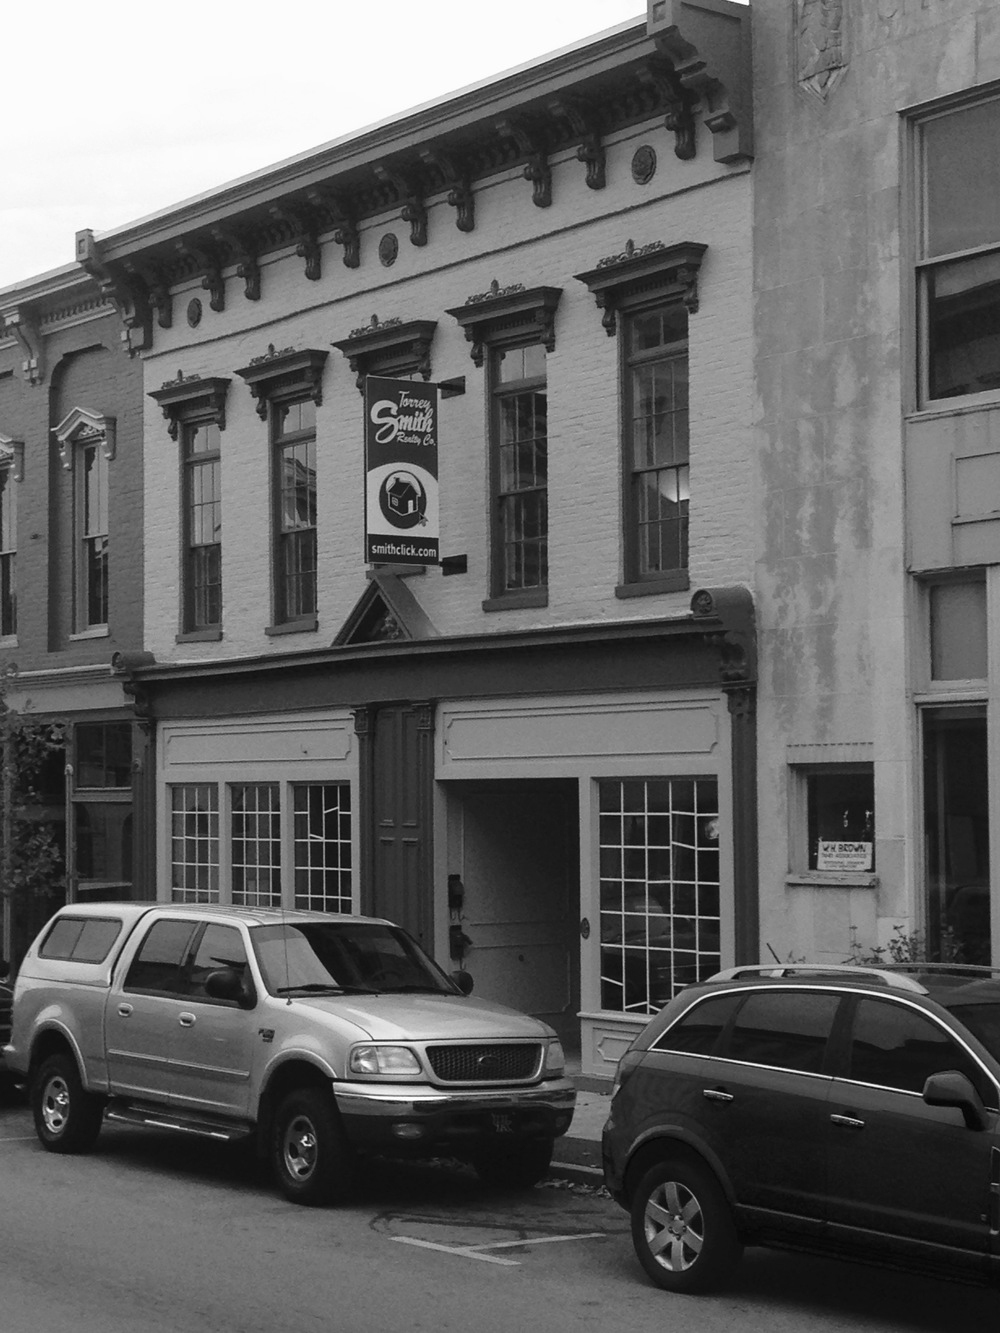 NEW OFFICE - Torrey Smith Realty Co., LLC - 529 Main Street, Shelbyville, KY  40065